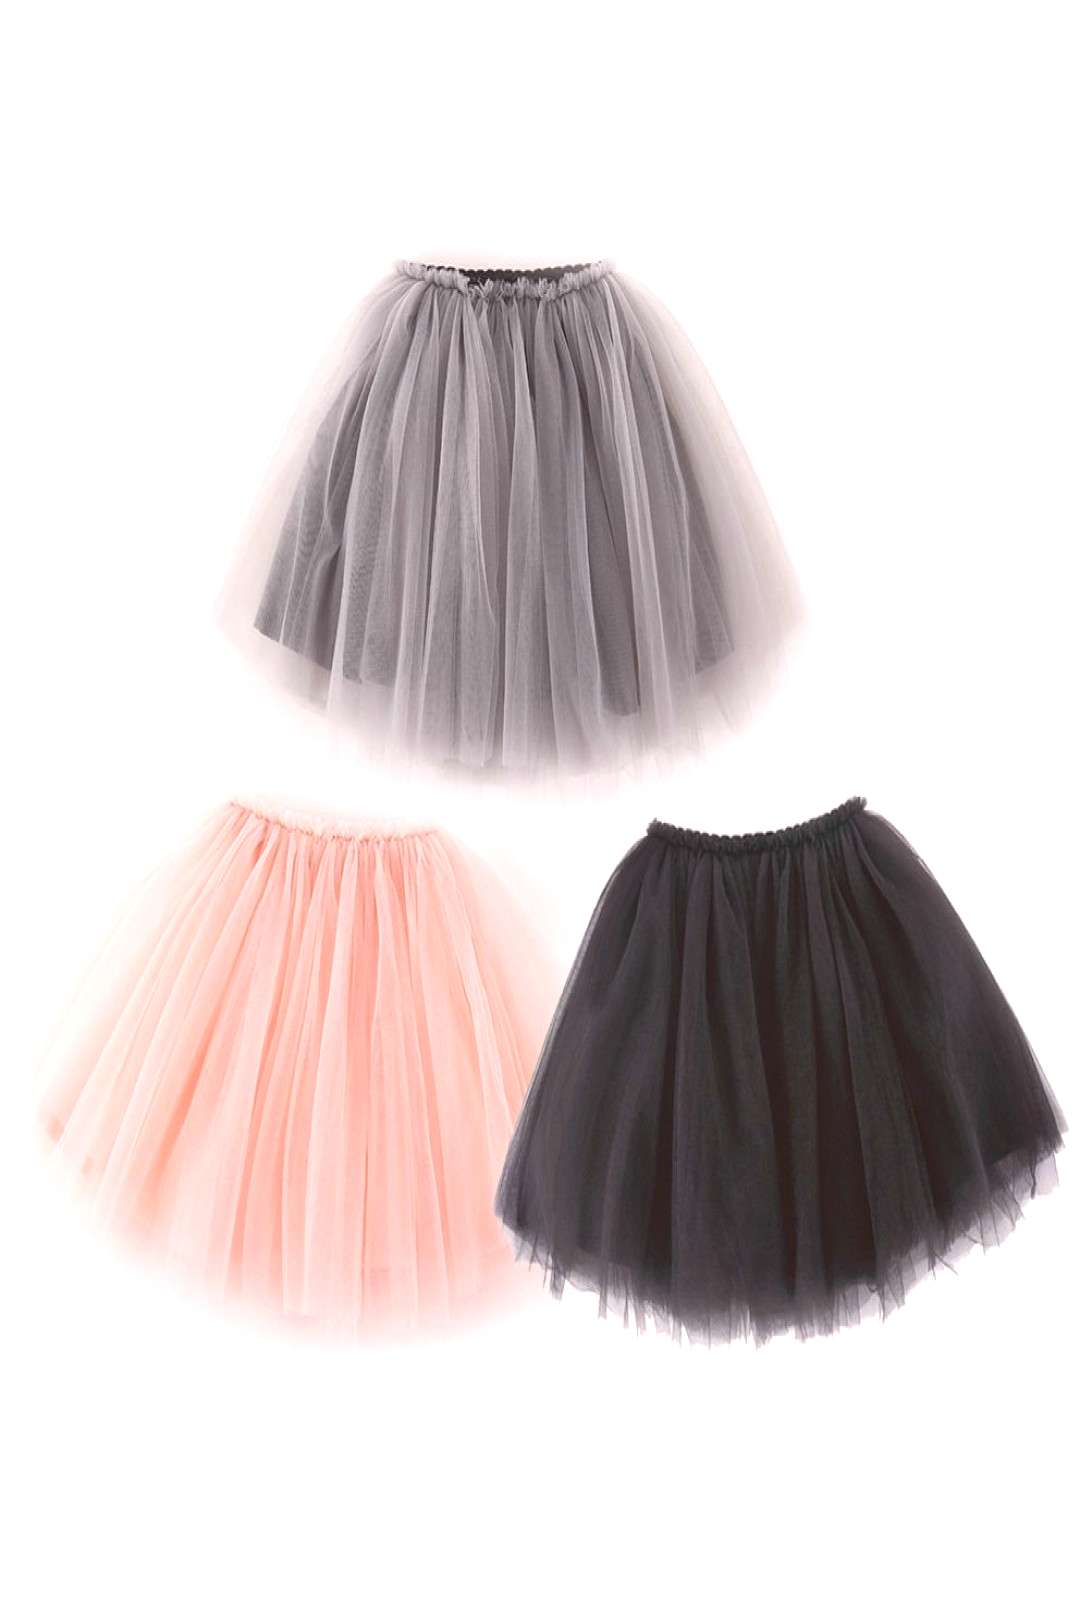 2016 New Design Pettiskirts Net Veil Skirt Baby Girls Kids Clothes Birthday Gift Toddler Ball Gown